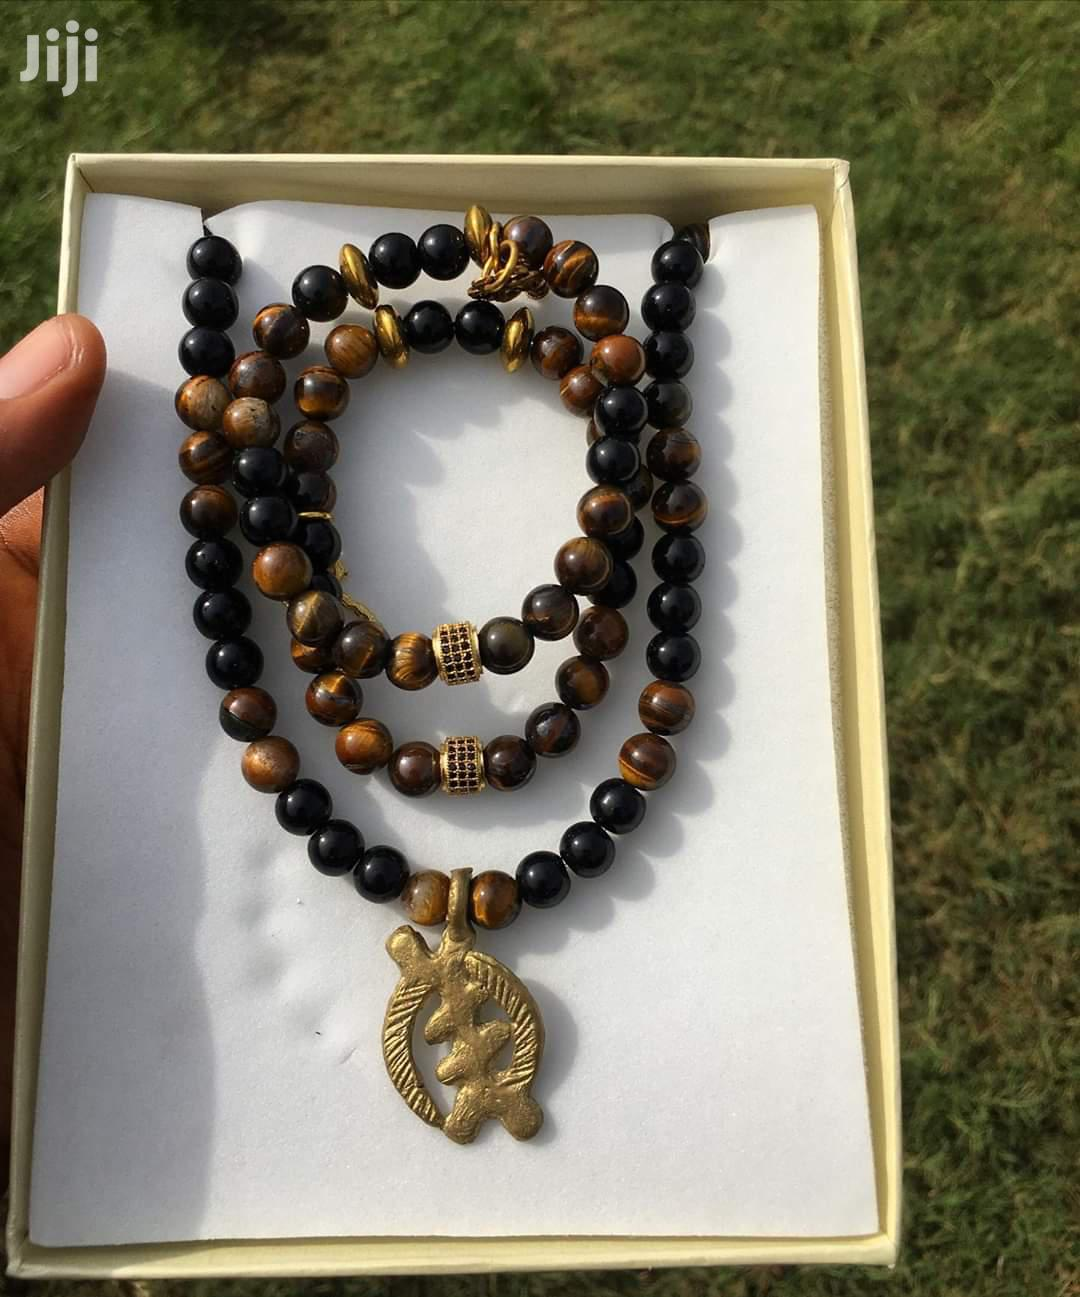 Adinkra Beaded Necklace